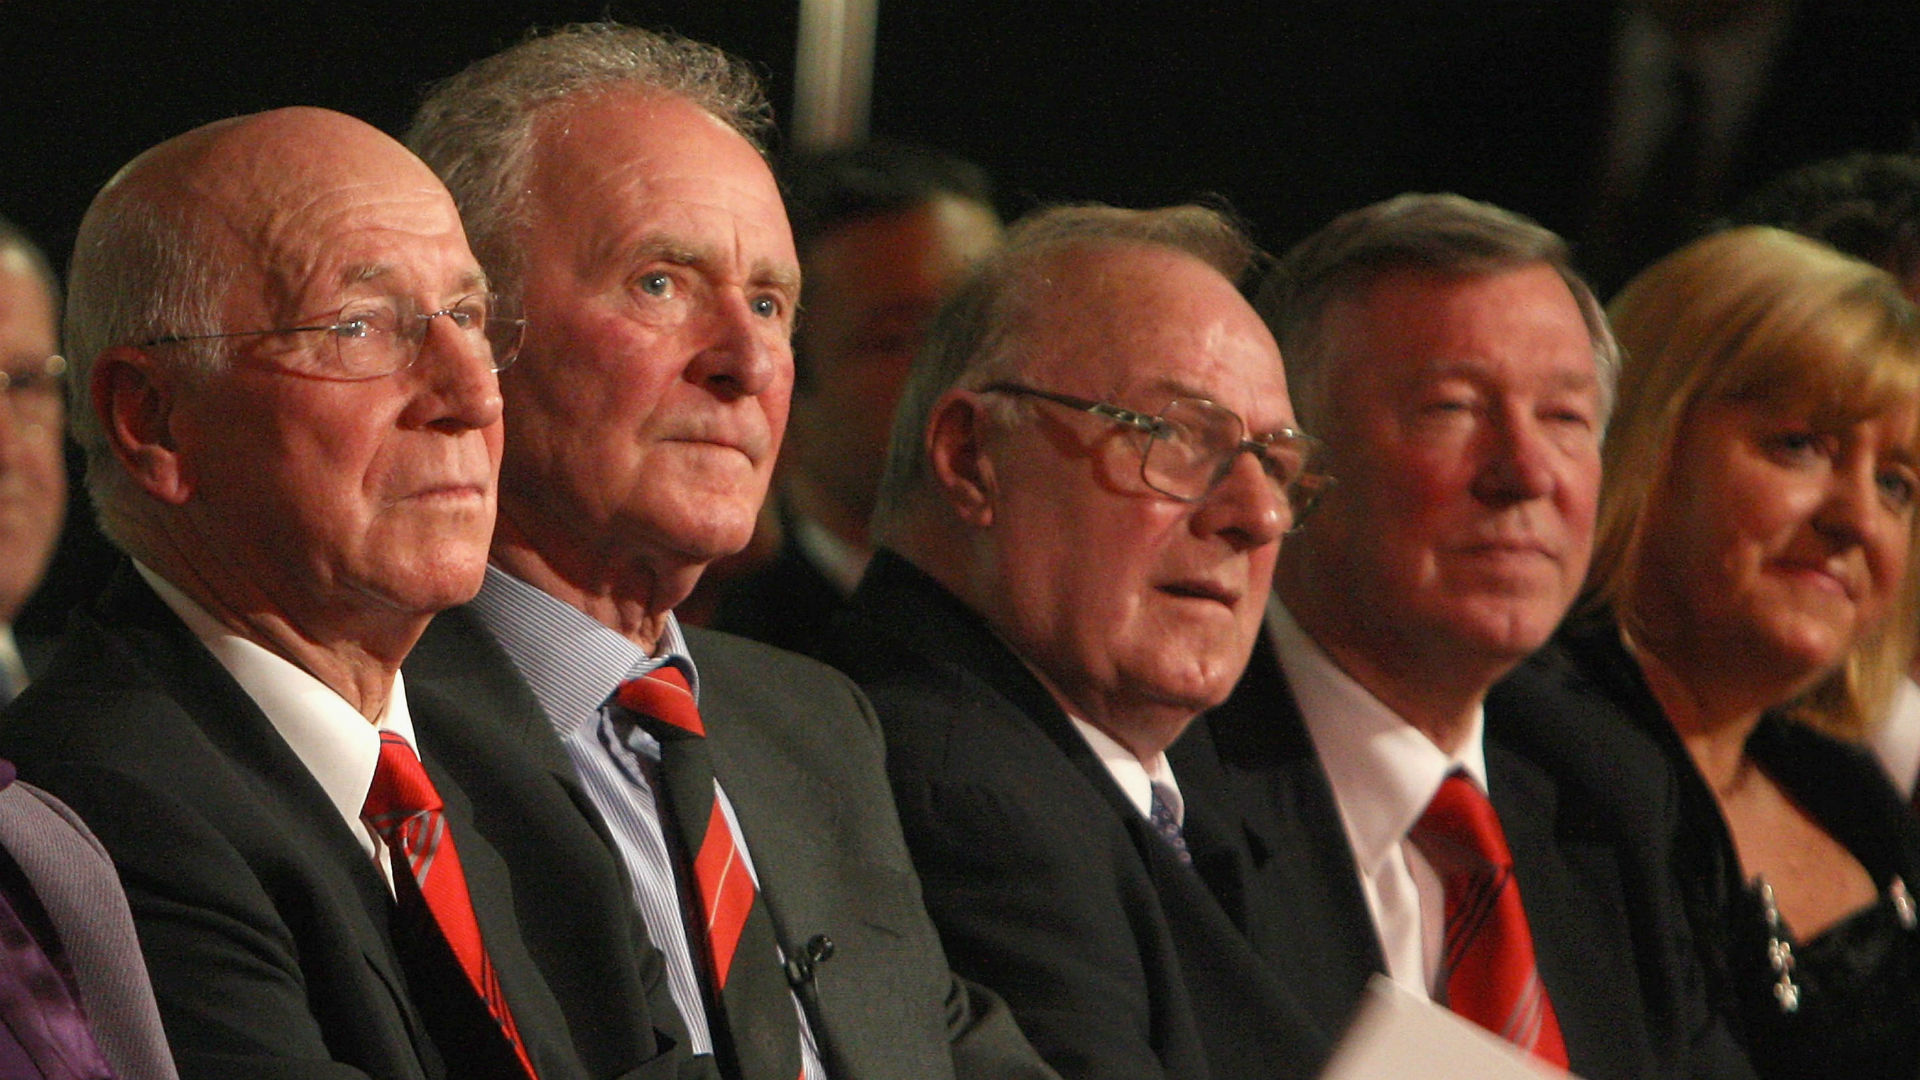 Bobby Charlton Harry Gregg Albert Scanlon Alex Ferguson Manchester United 2008